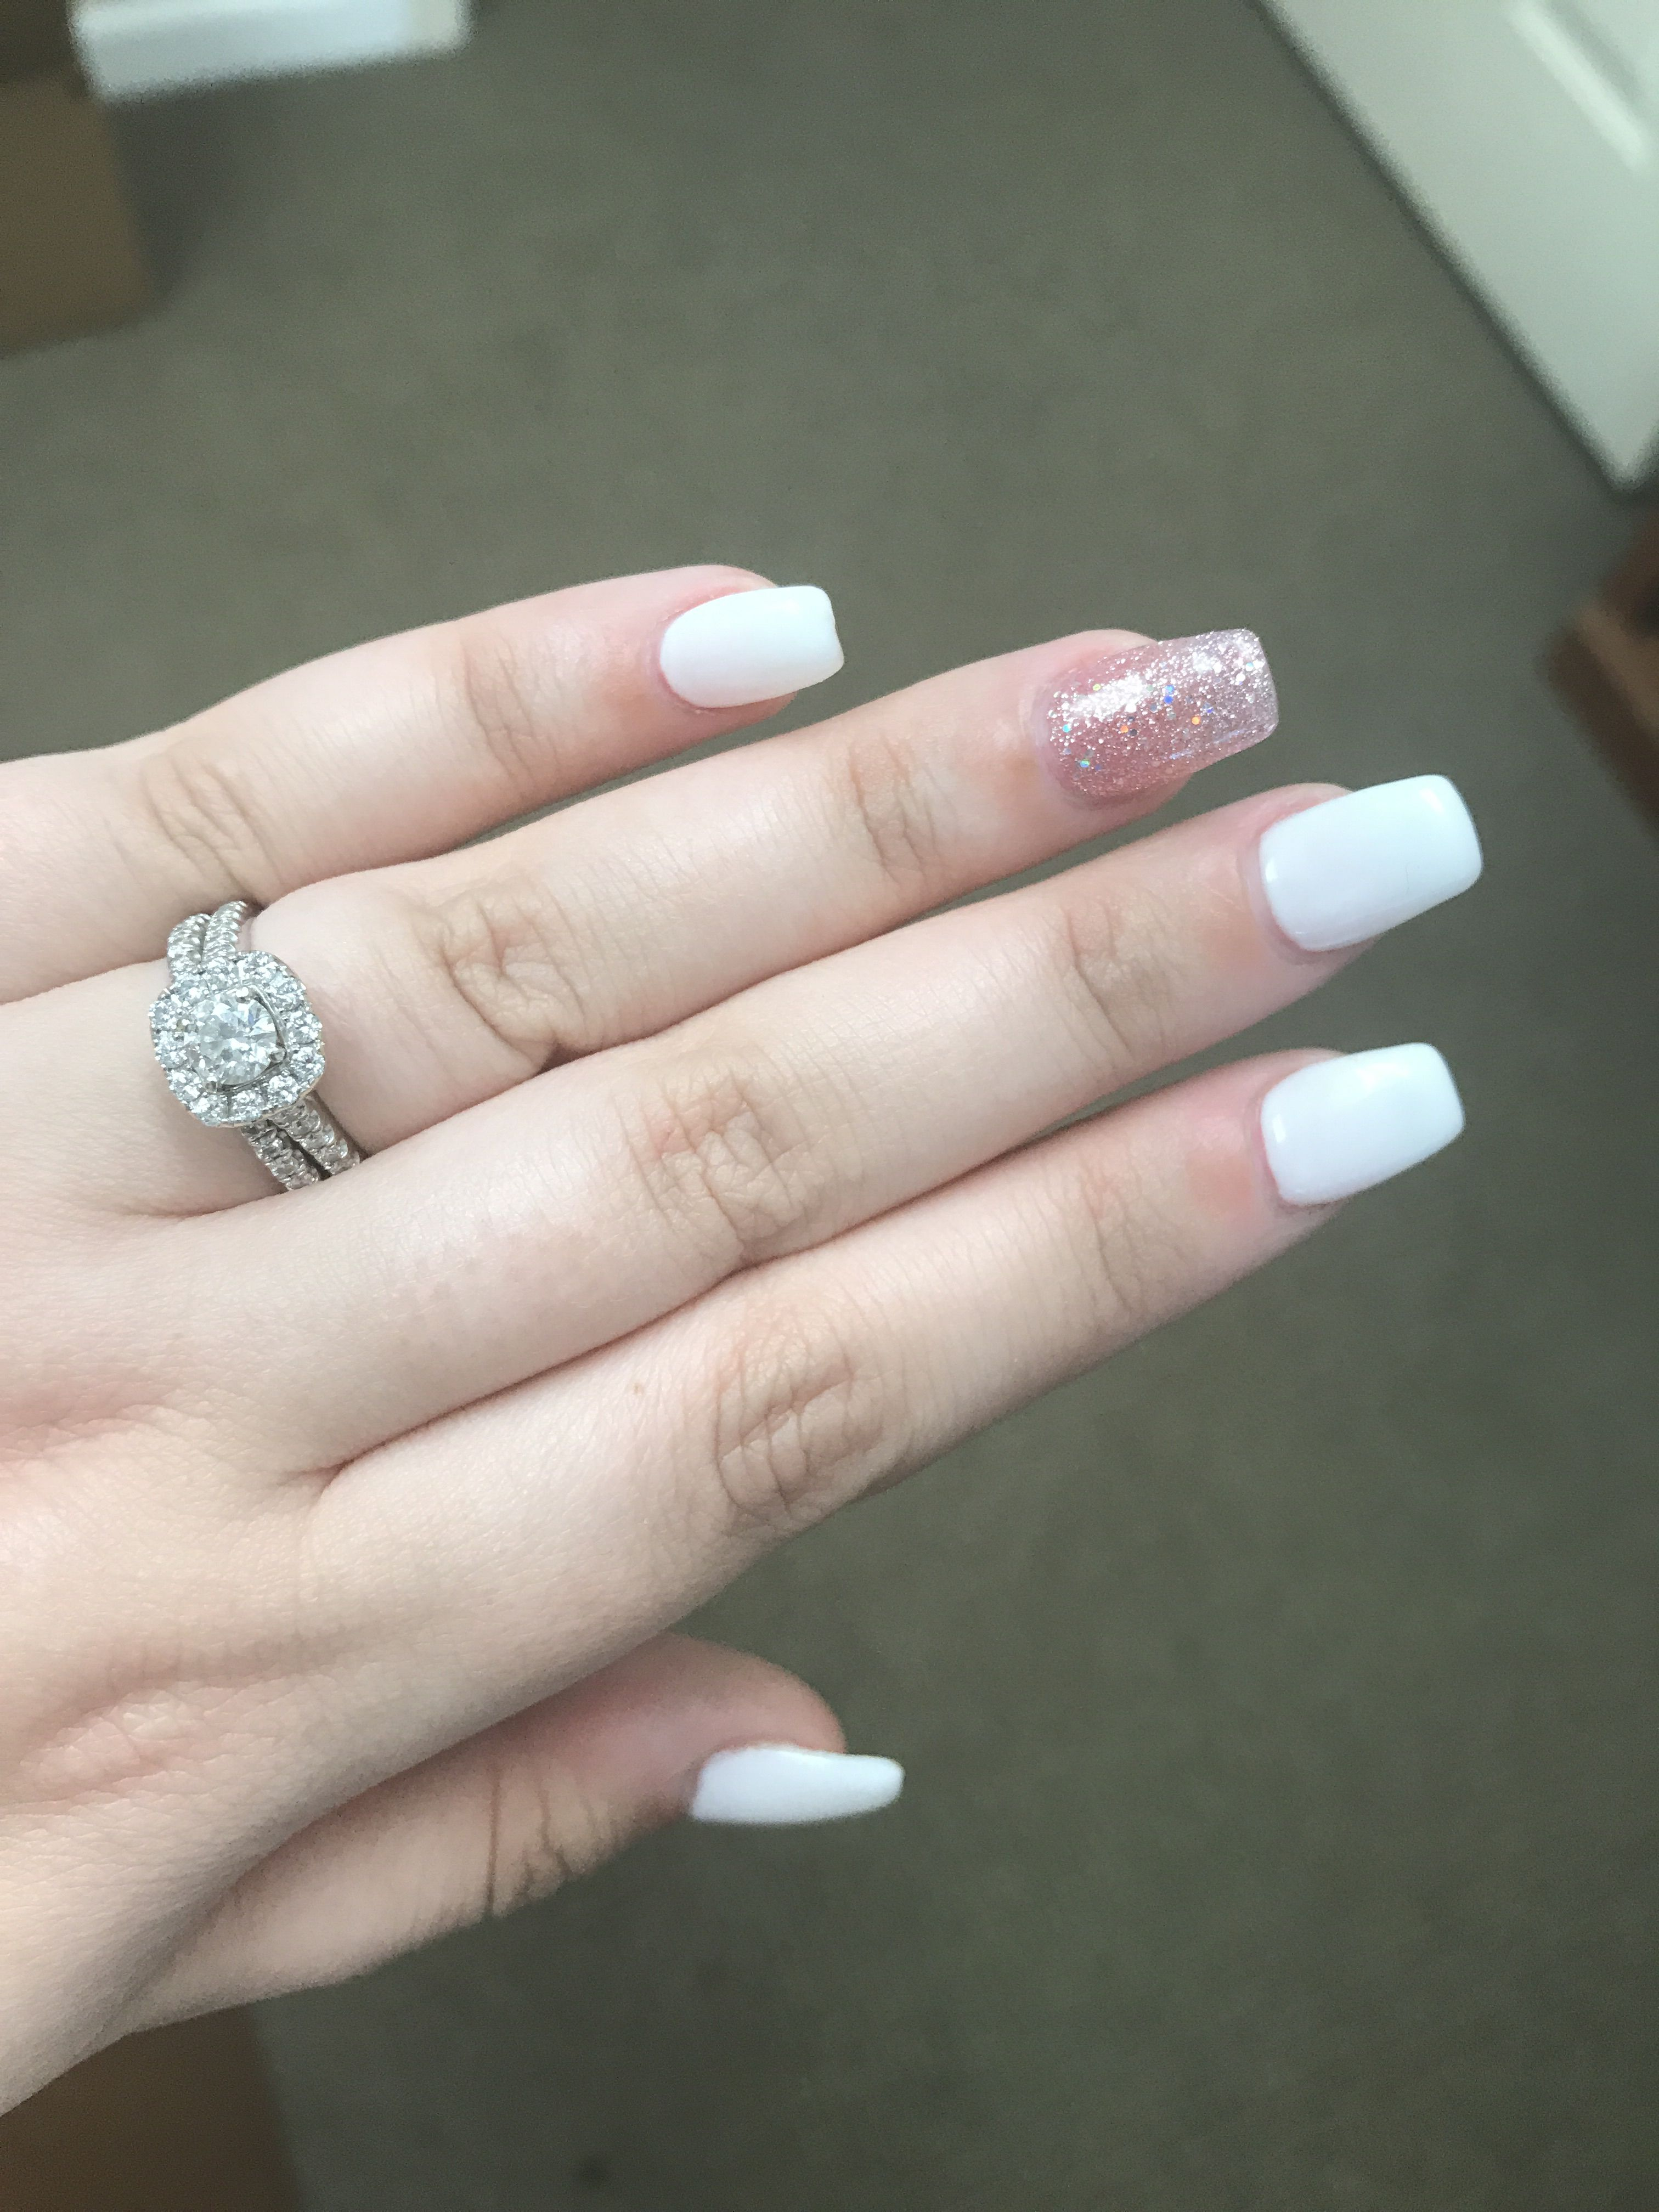 Short Coffin White With Pink Glitter Accent Acrylic And Gel Nails Coffin Shape Nails Pink Acrylic Nails Pink Glitter